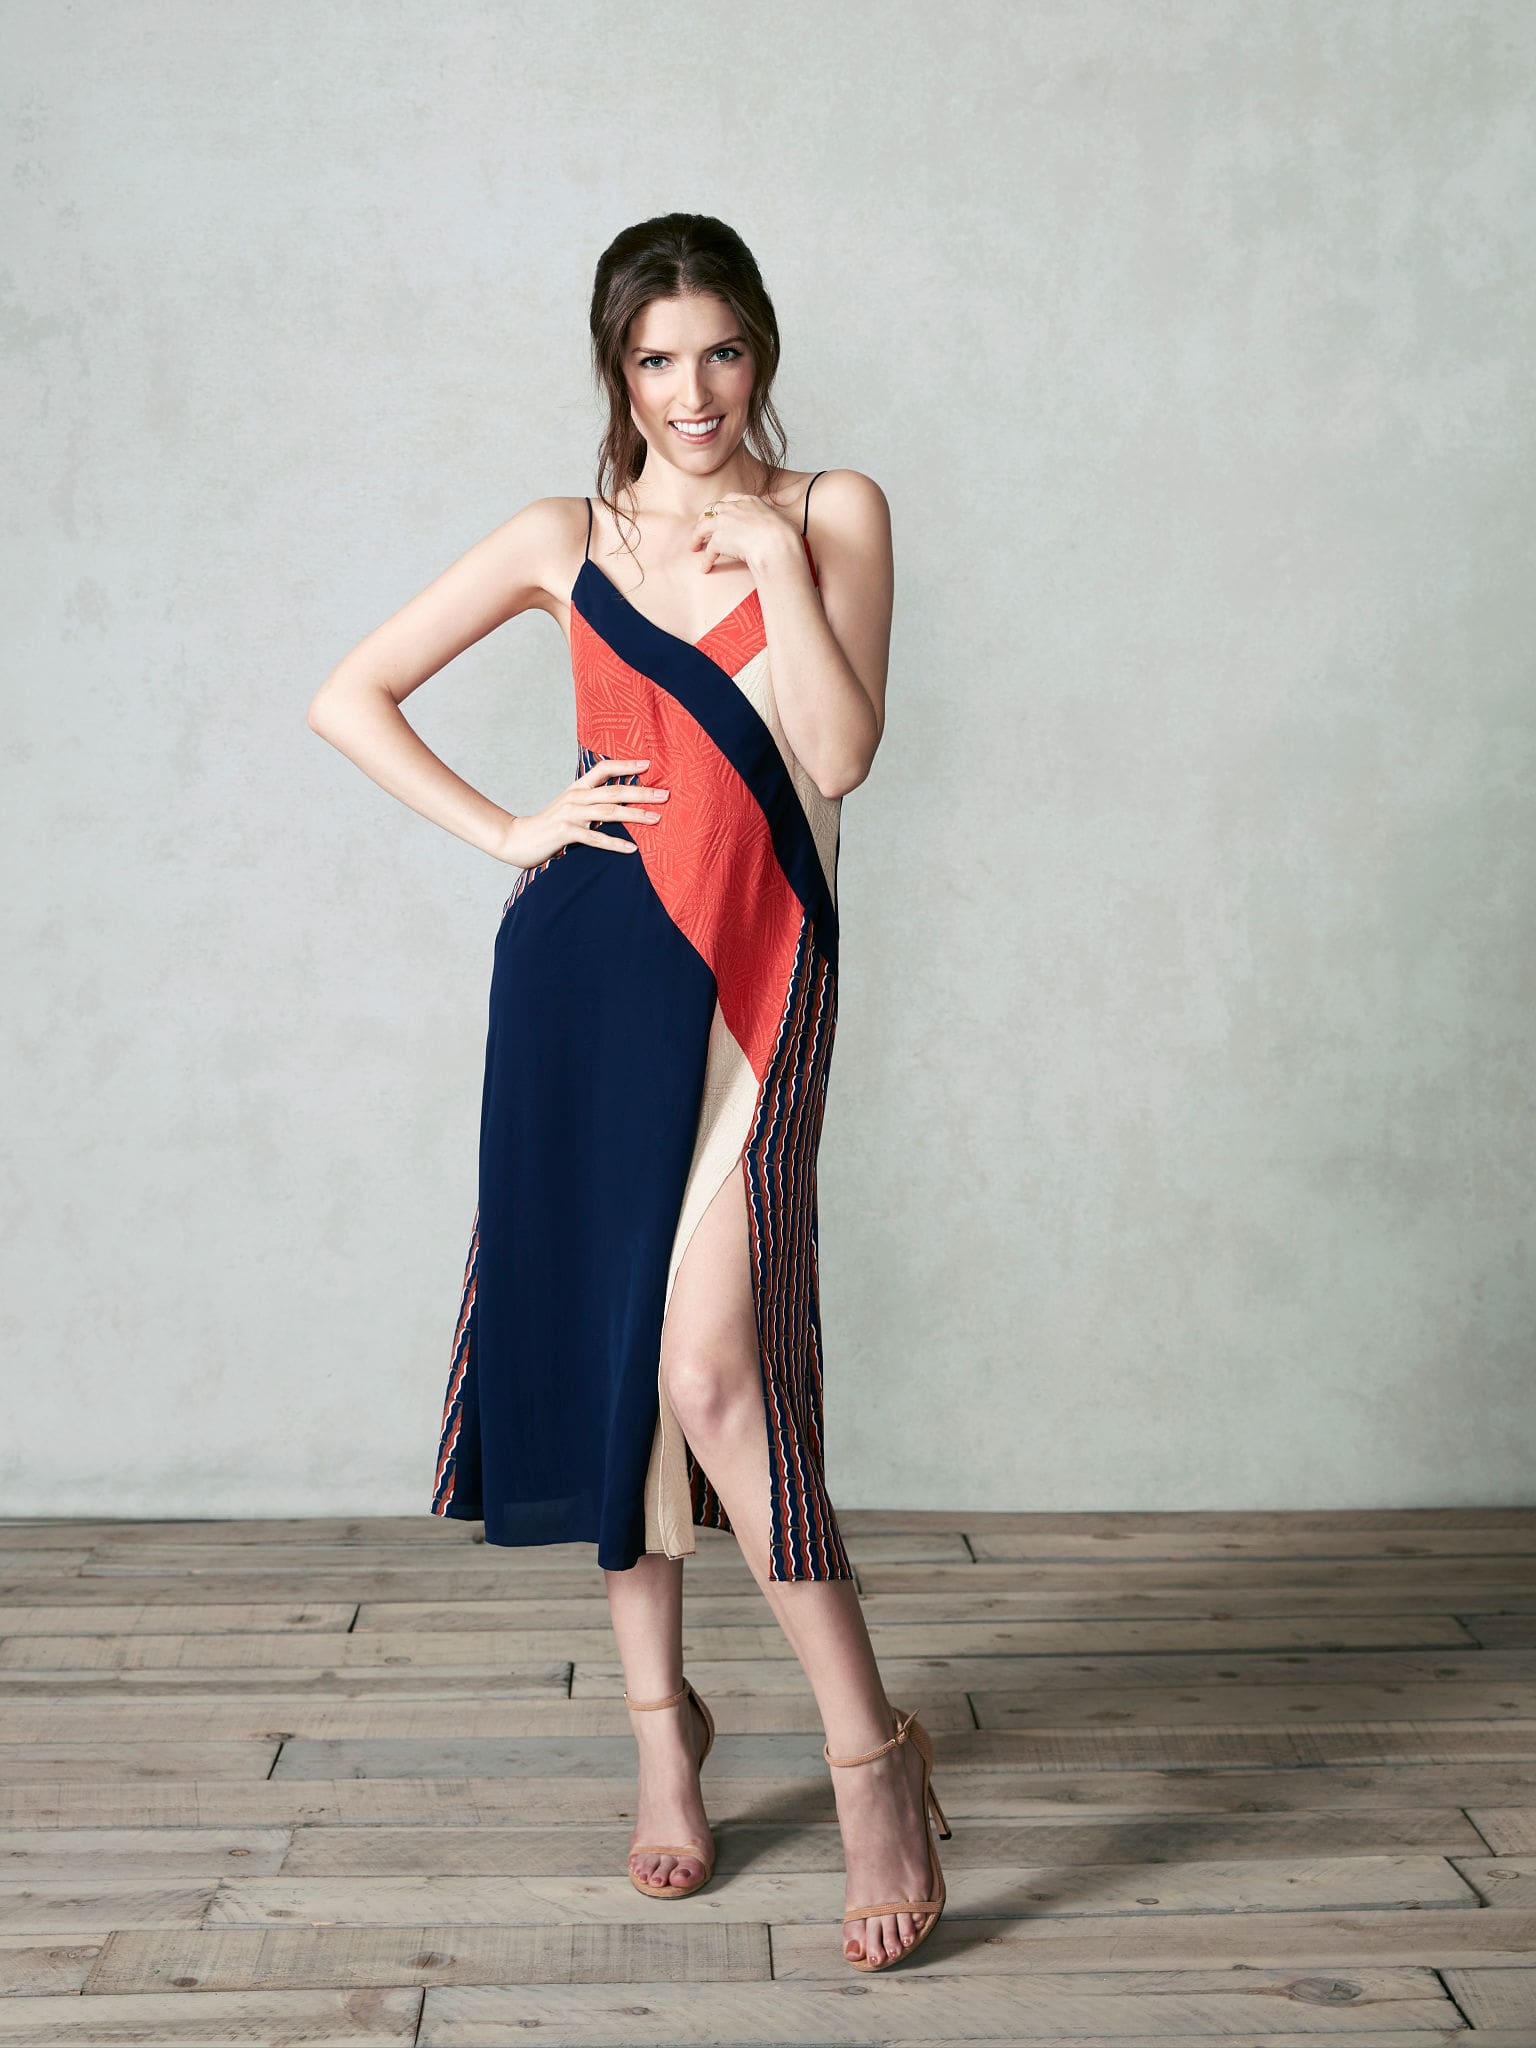 Anna Kendrick hot pictures sexy